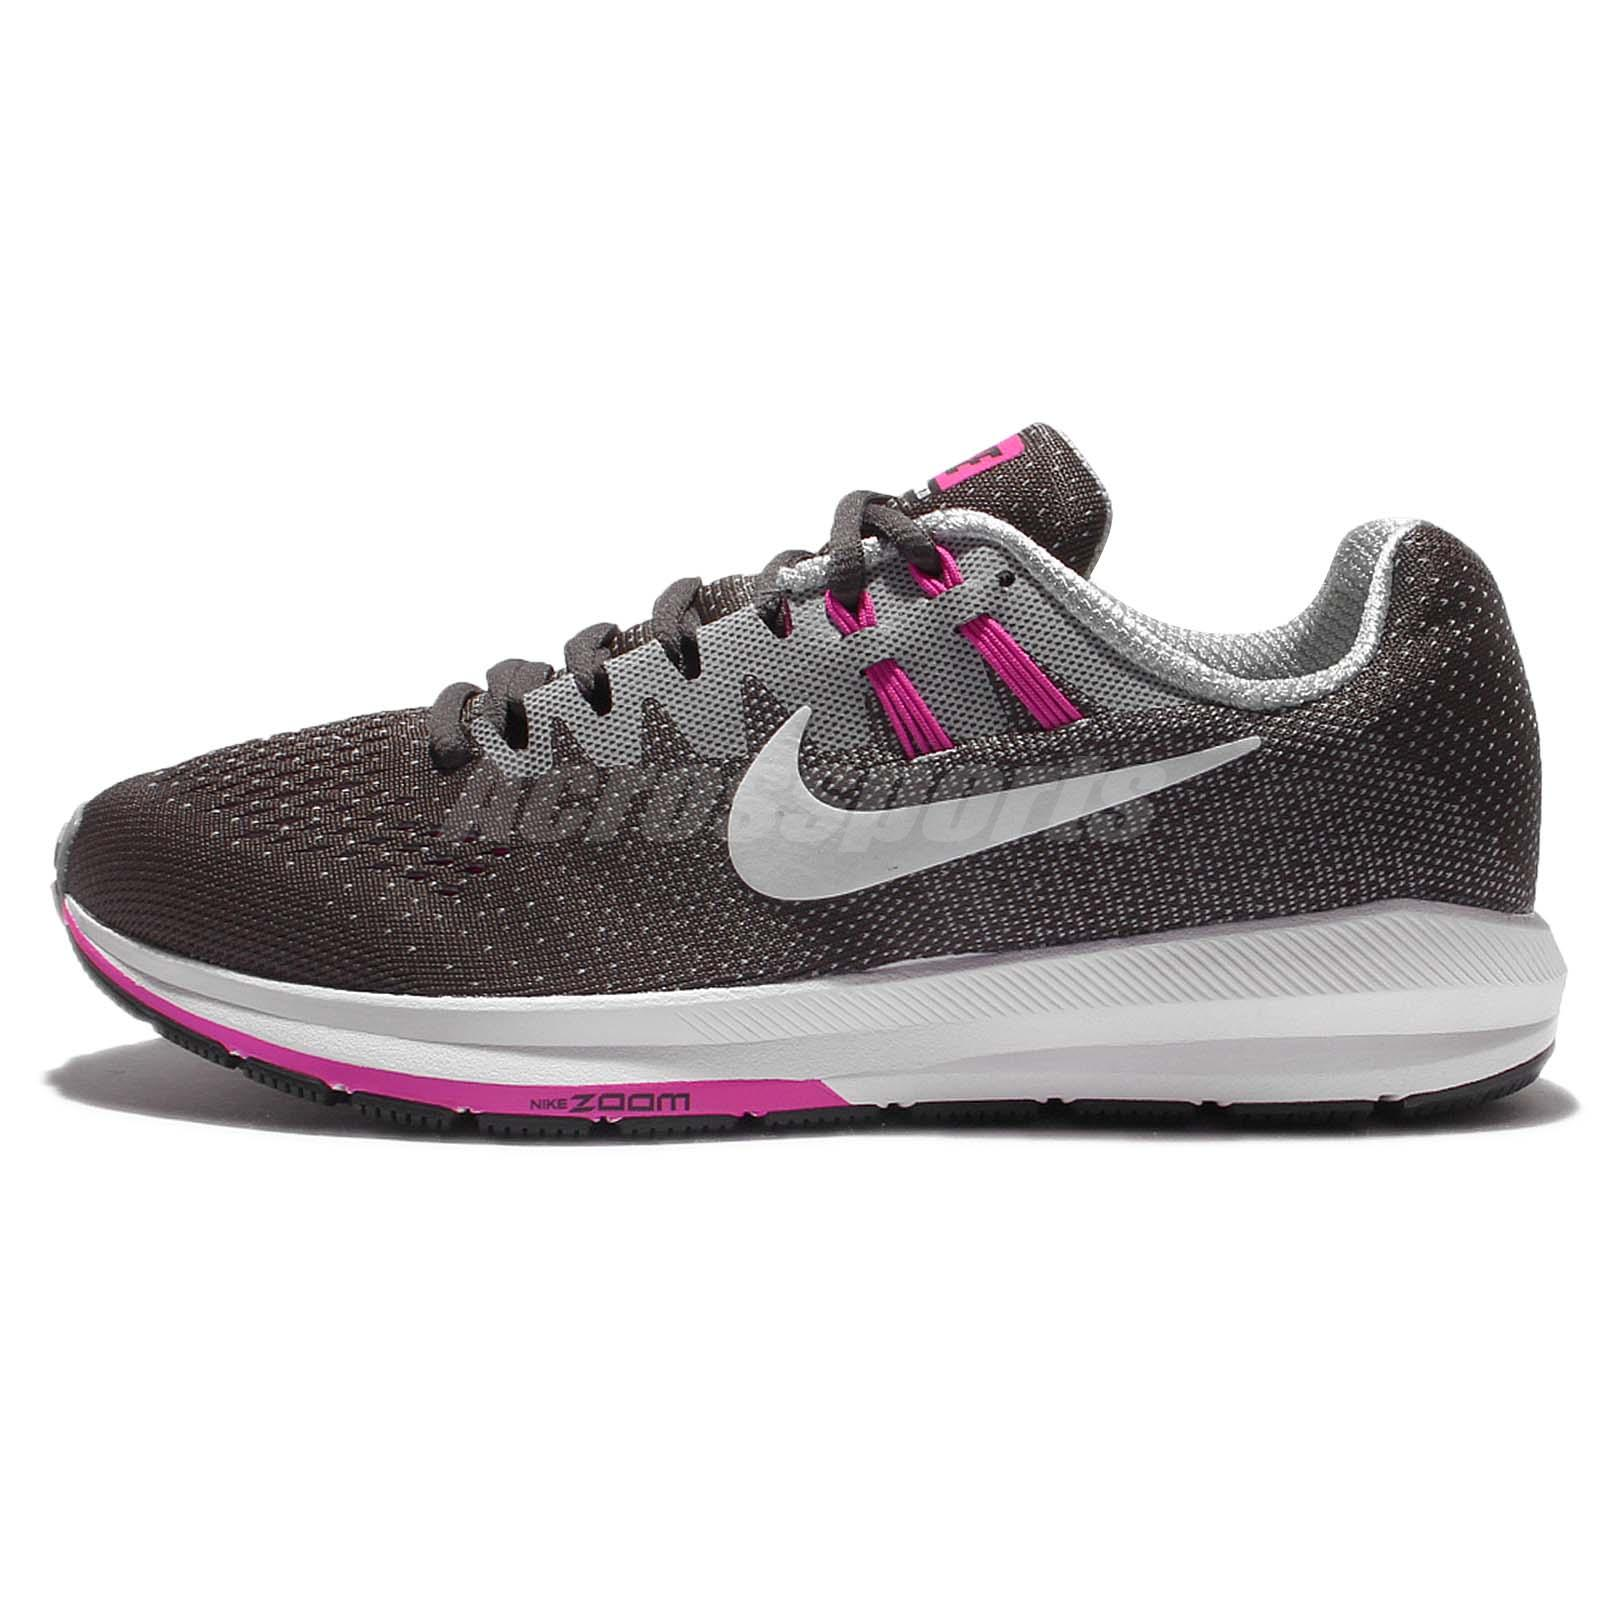 626a2613d0fb3 Nike Wmns Air Zoom Structure 20 Grey Fire Pink Women Running Shoes  849577-006